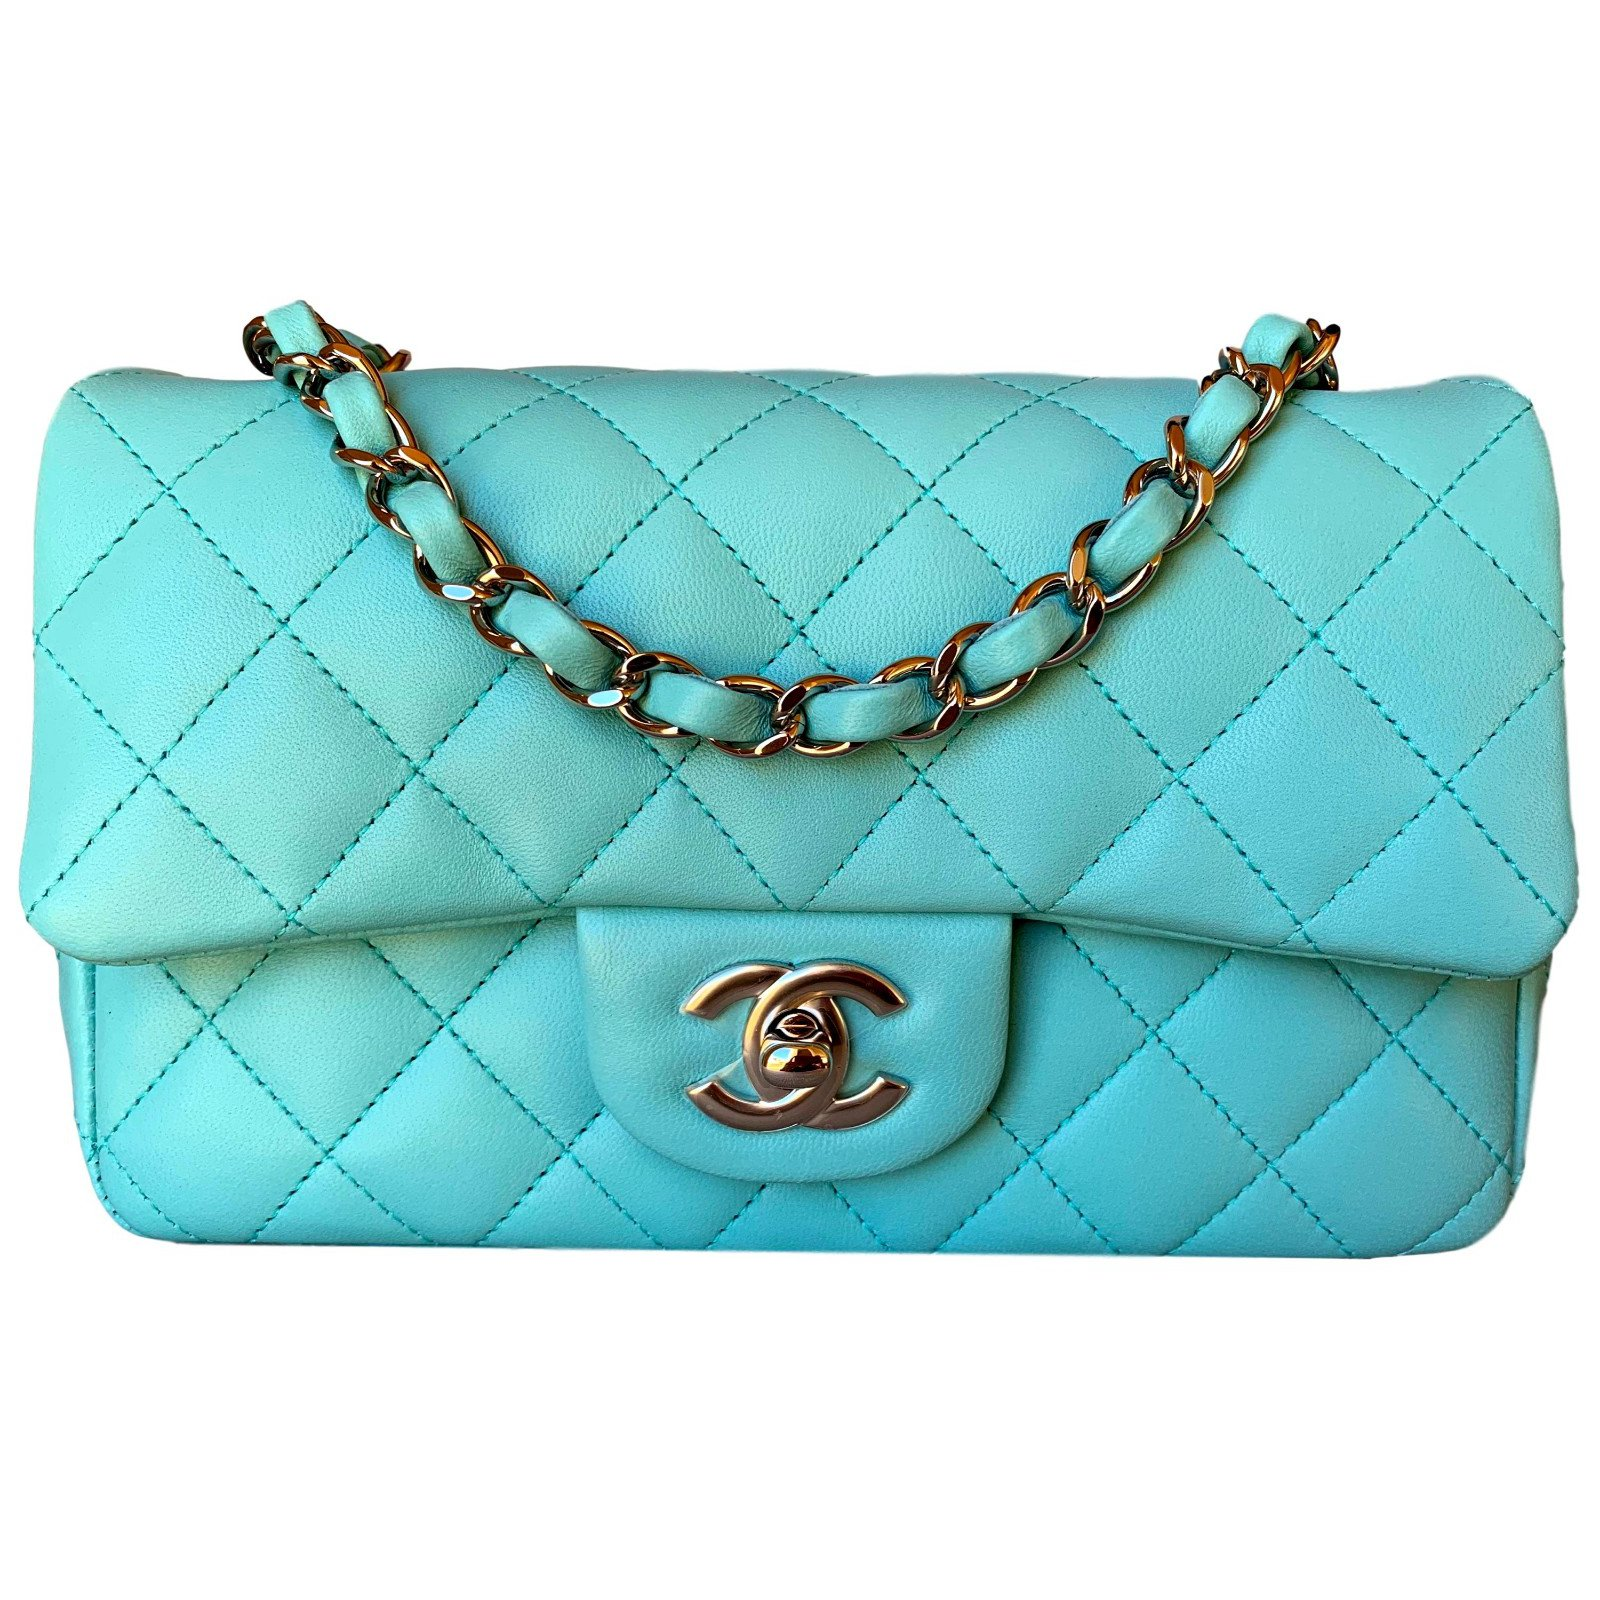 Chanel Light Blue Classic Quilted Lambskin Mini Flap with Silver Chain  Handbags Leather Light blue ref 9d44644c2